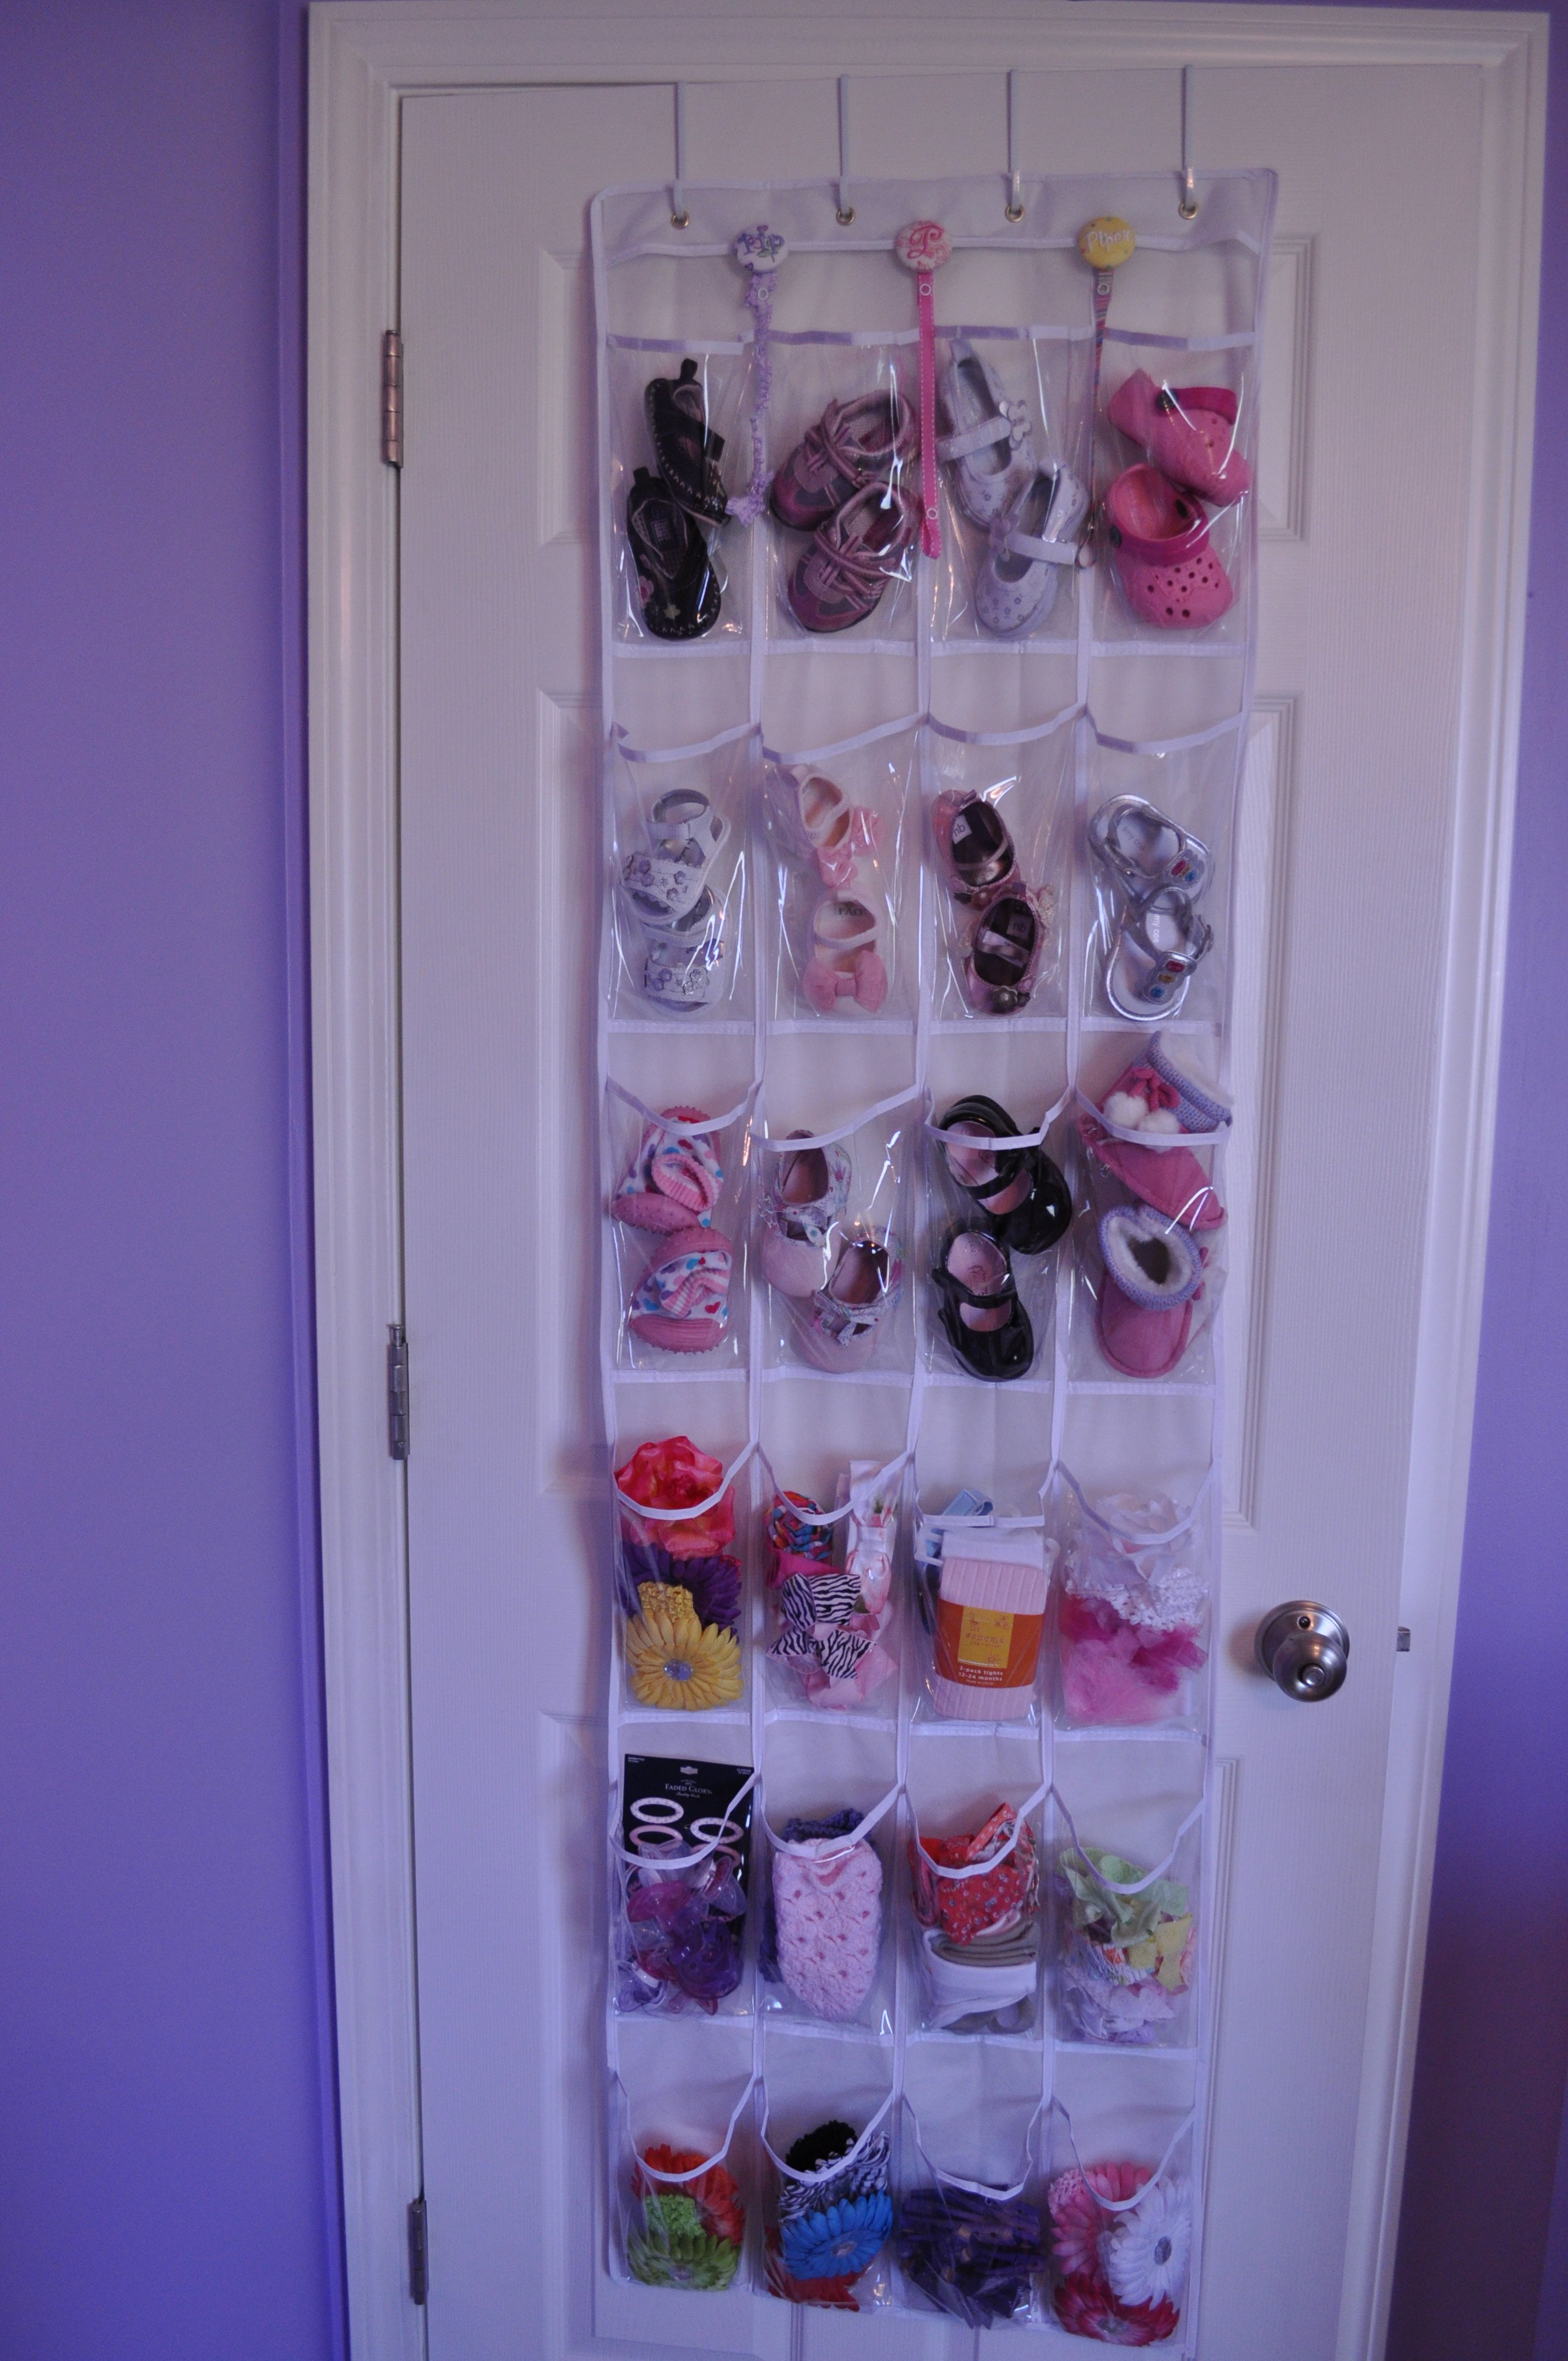 Great Way To Organize Baby Shoes Headbands And Accessories Clear Plastic Over Baby Clothes Organization Baby Organization Baby Girl Nursery Room Ideas Diy